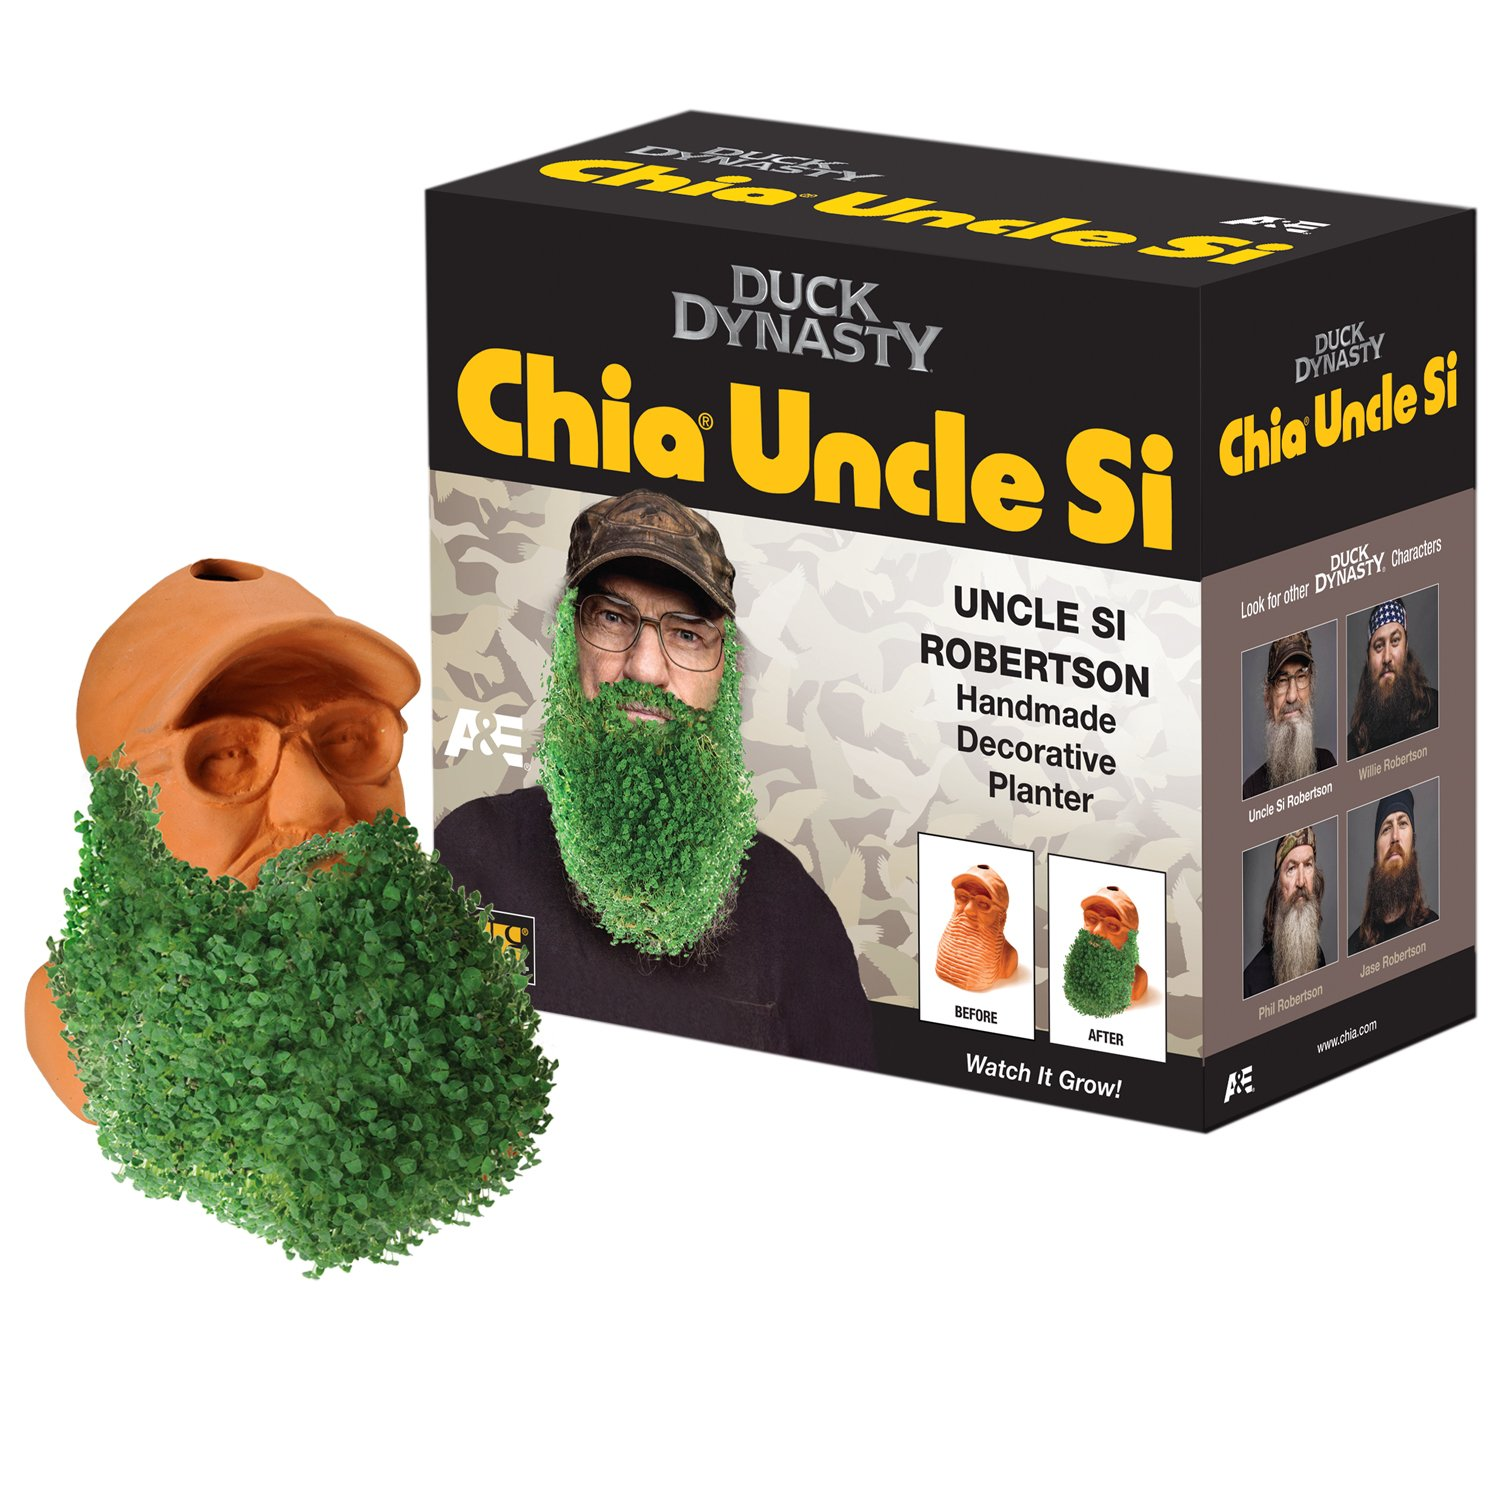 Amazon.com : Chia Uncle Si Duck Dynasty Planter : Home And Garden ...